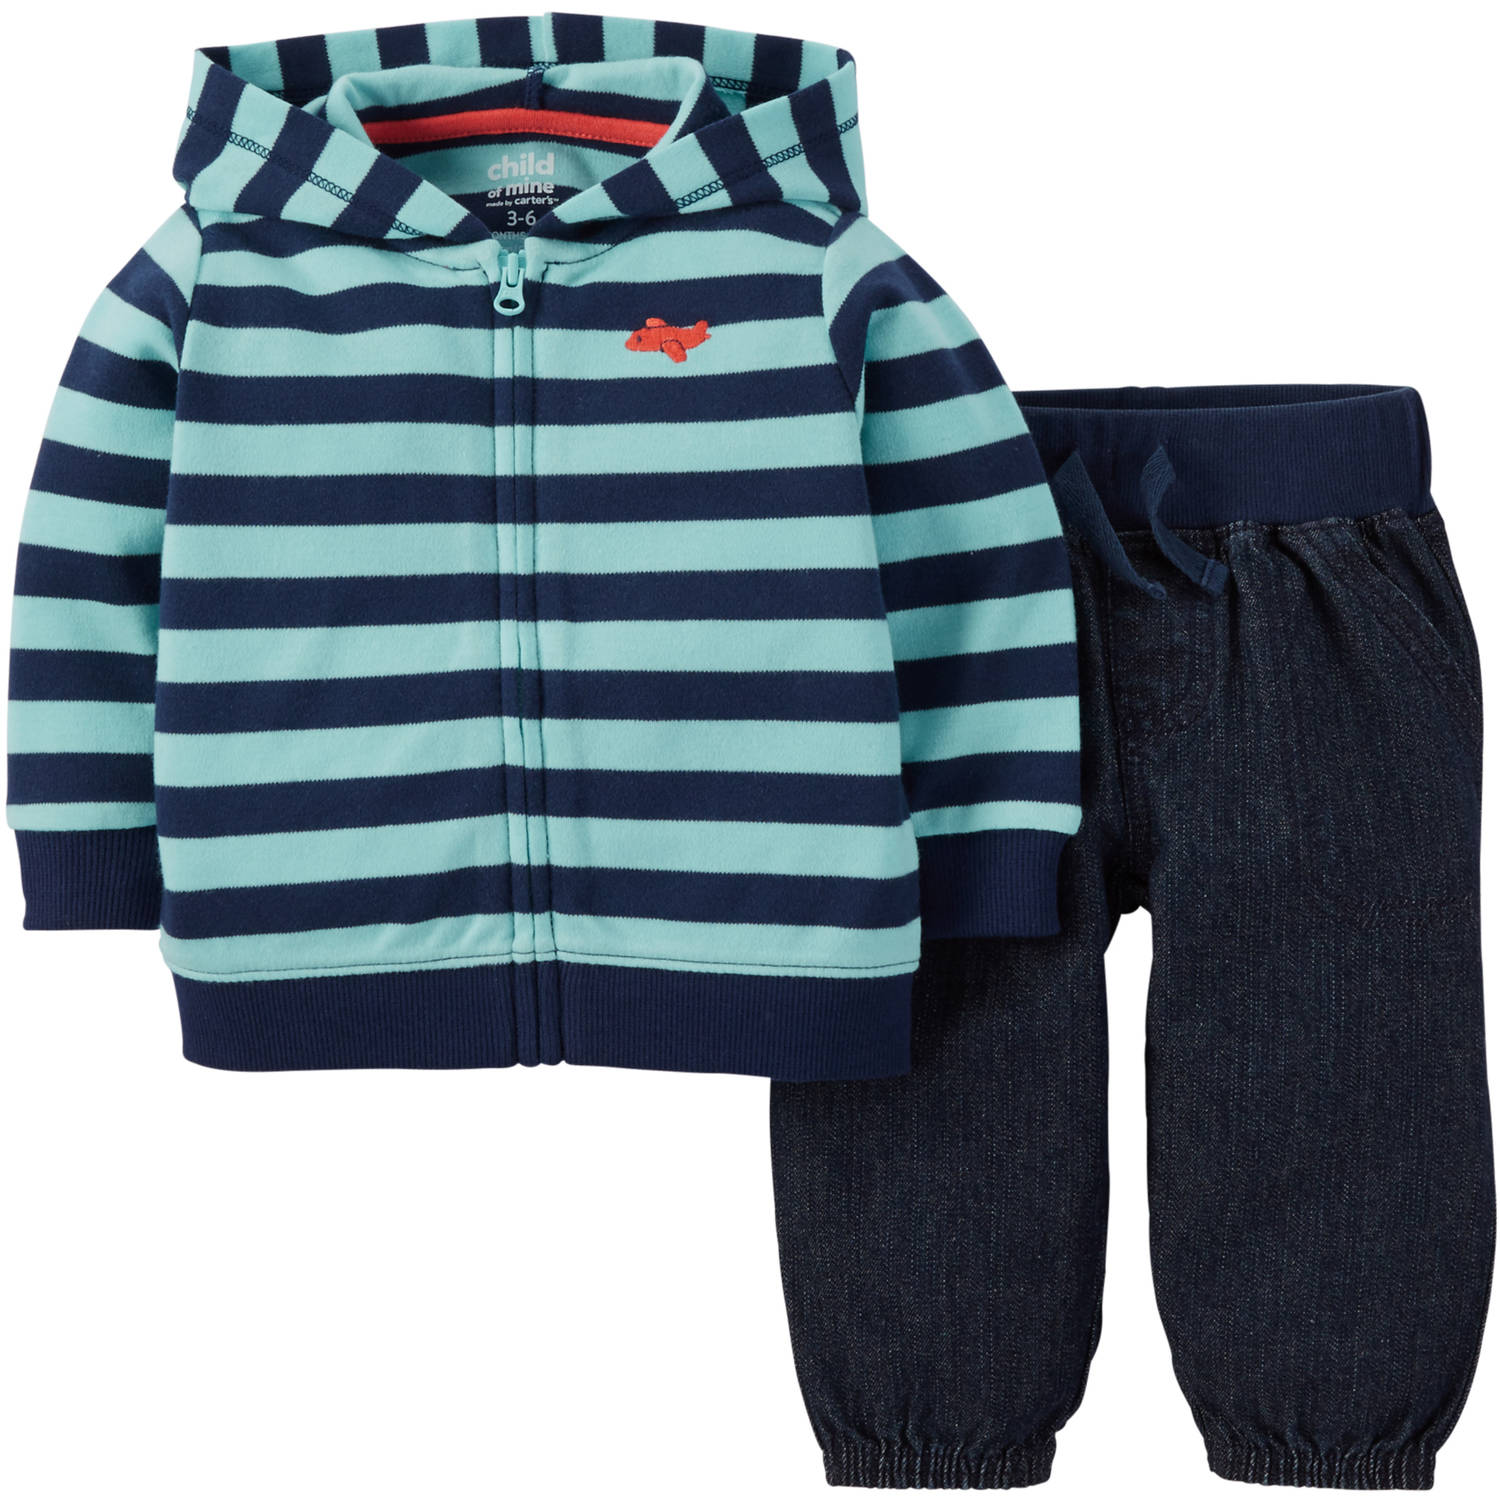 Child of Mine made by Carter's Newborn Baby Boys' Hoodie and Pant Outfit Set 2 Pieces